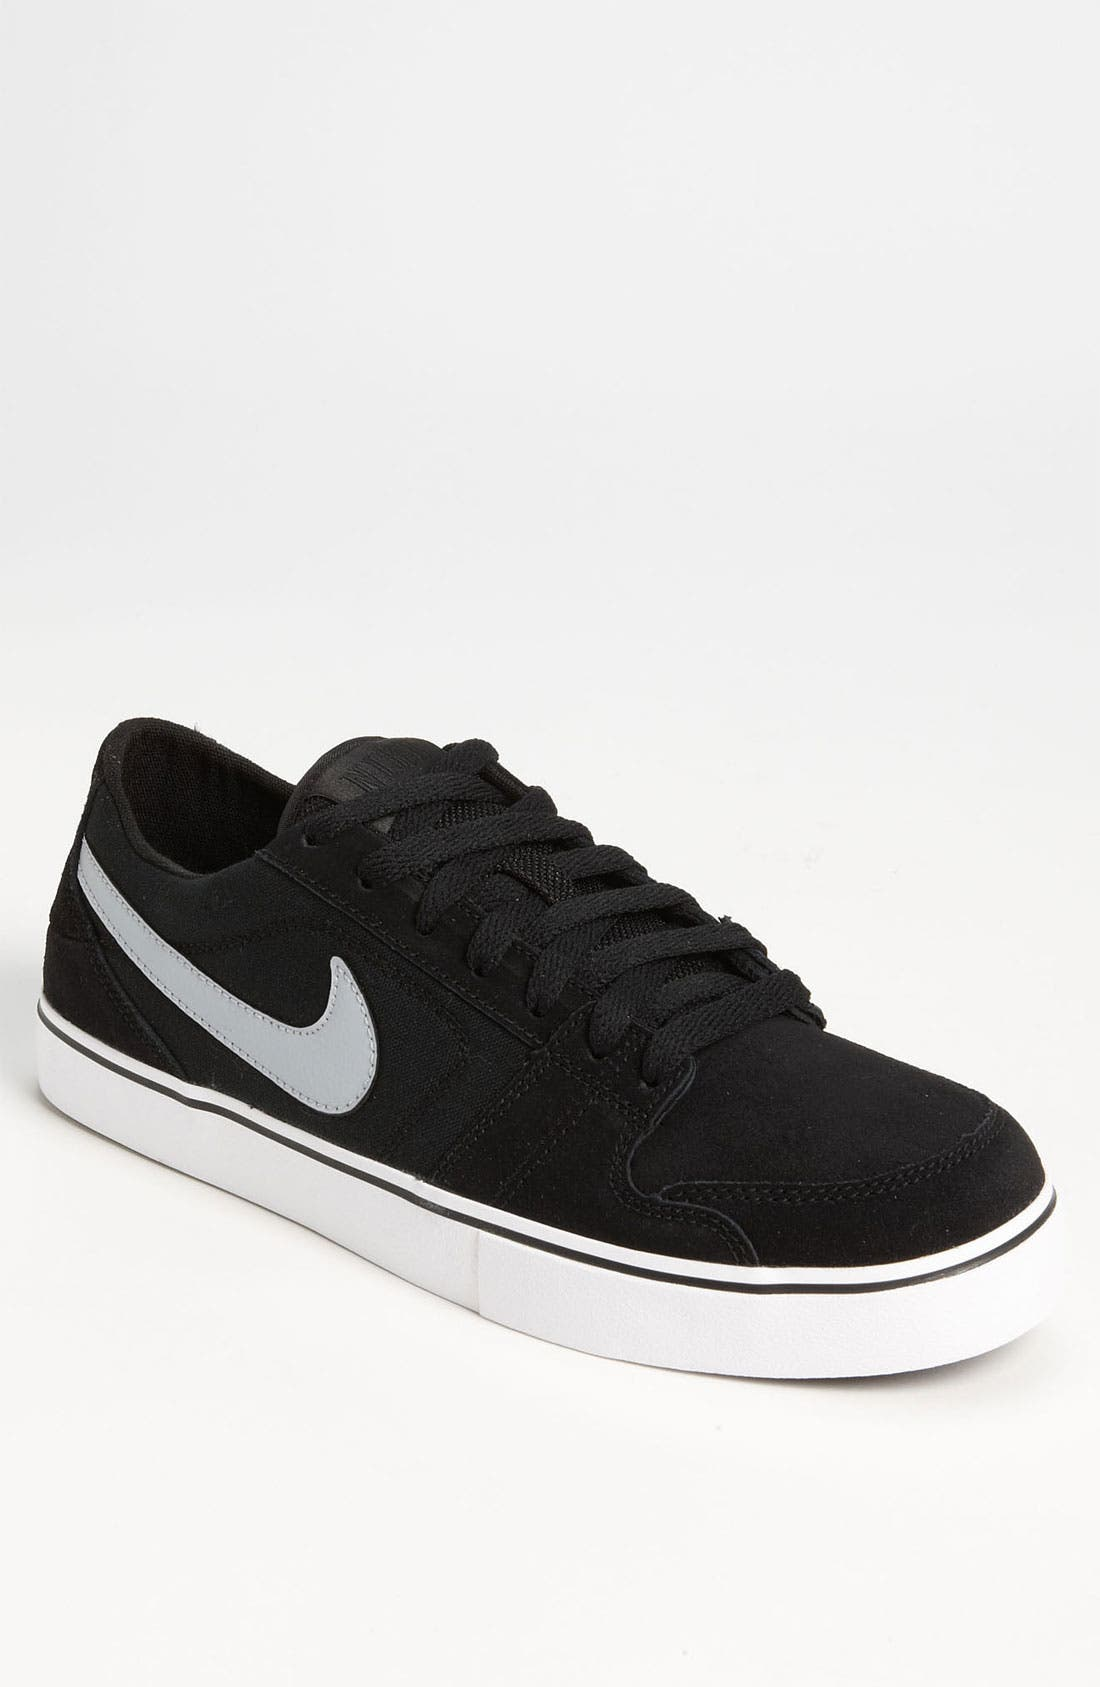 Alternate Image 1 Selected - Nike 'Ruckus LR' Sneaker (Men) (Online Only)